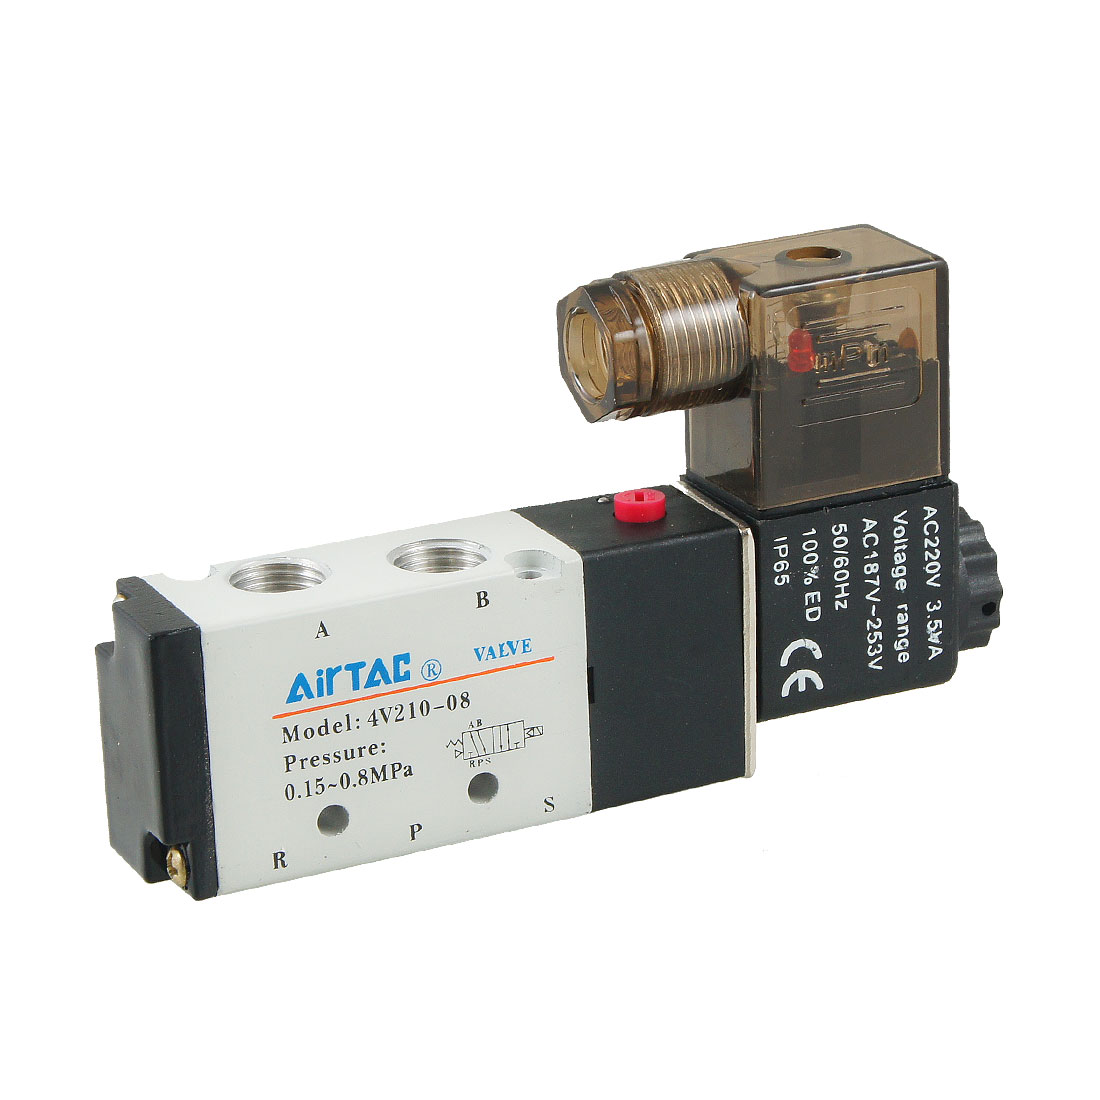 AC 220V 3.5VA Single Coil 2 Position 5 Way Solenoid Valve 4V210-08